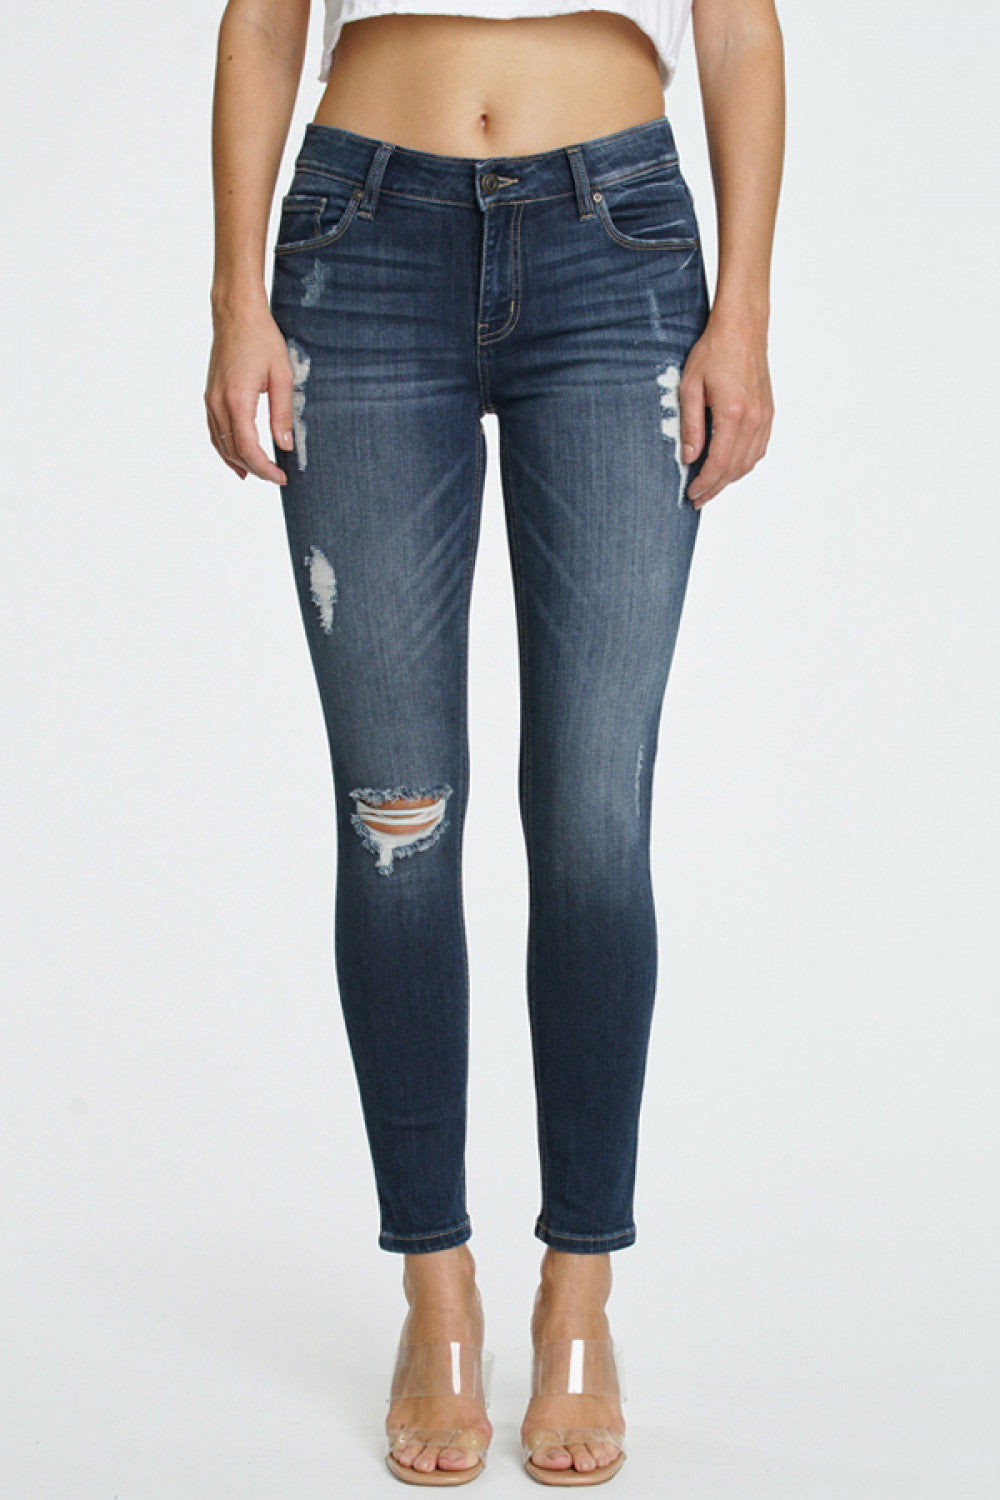 Jude Jeans